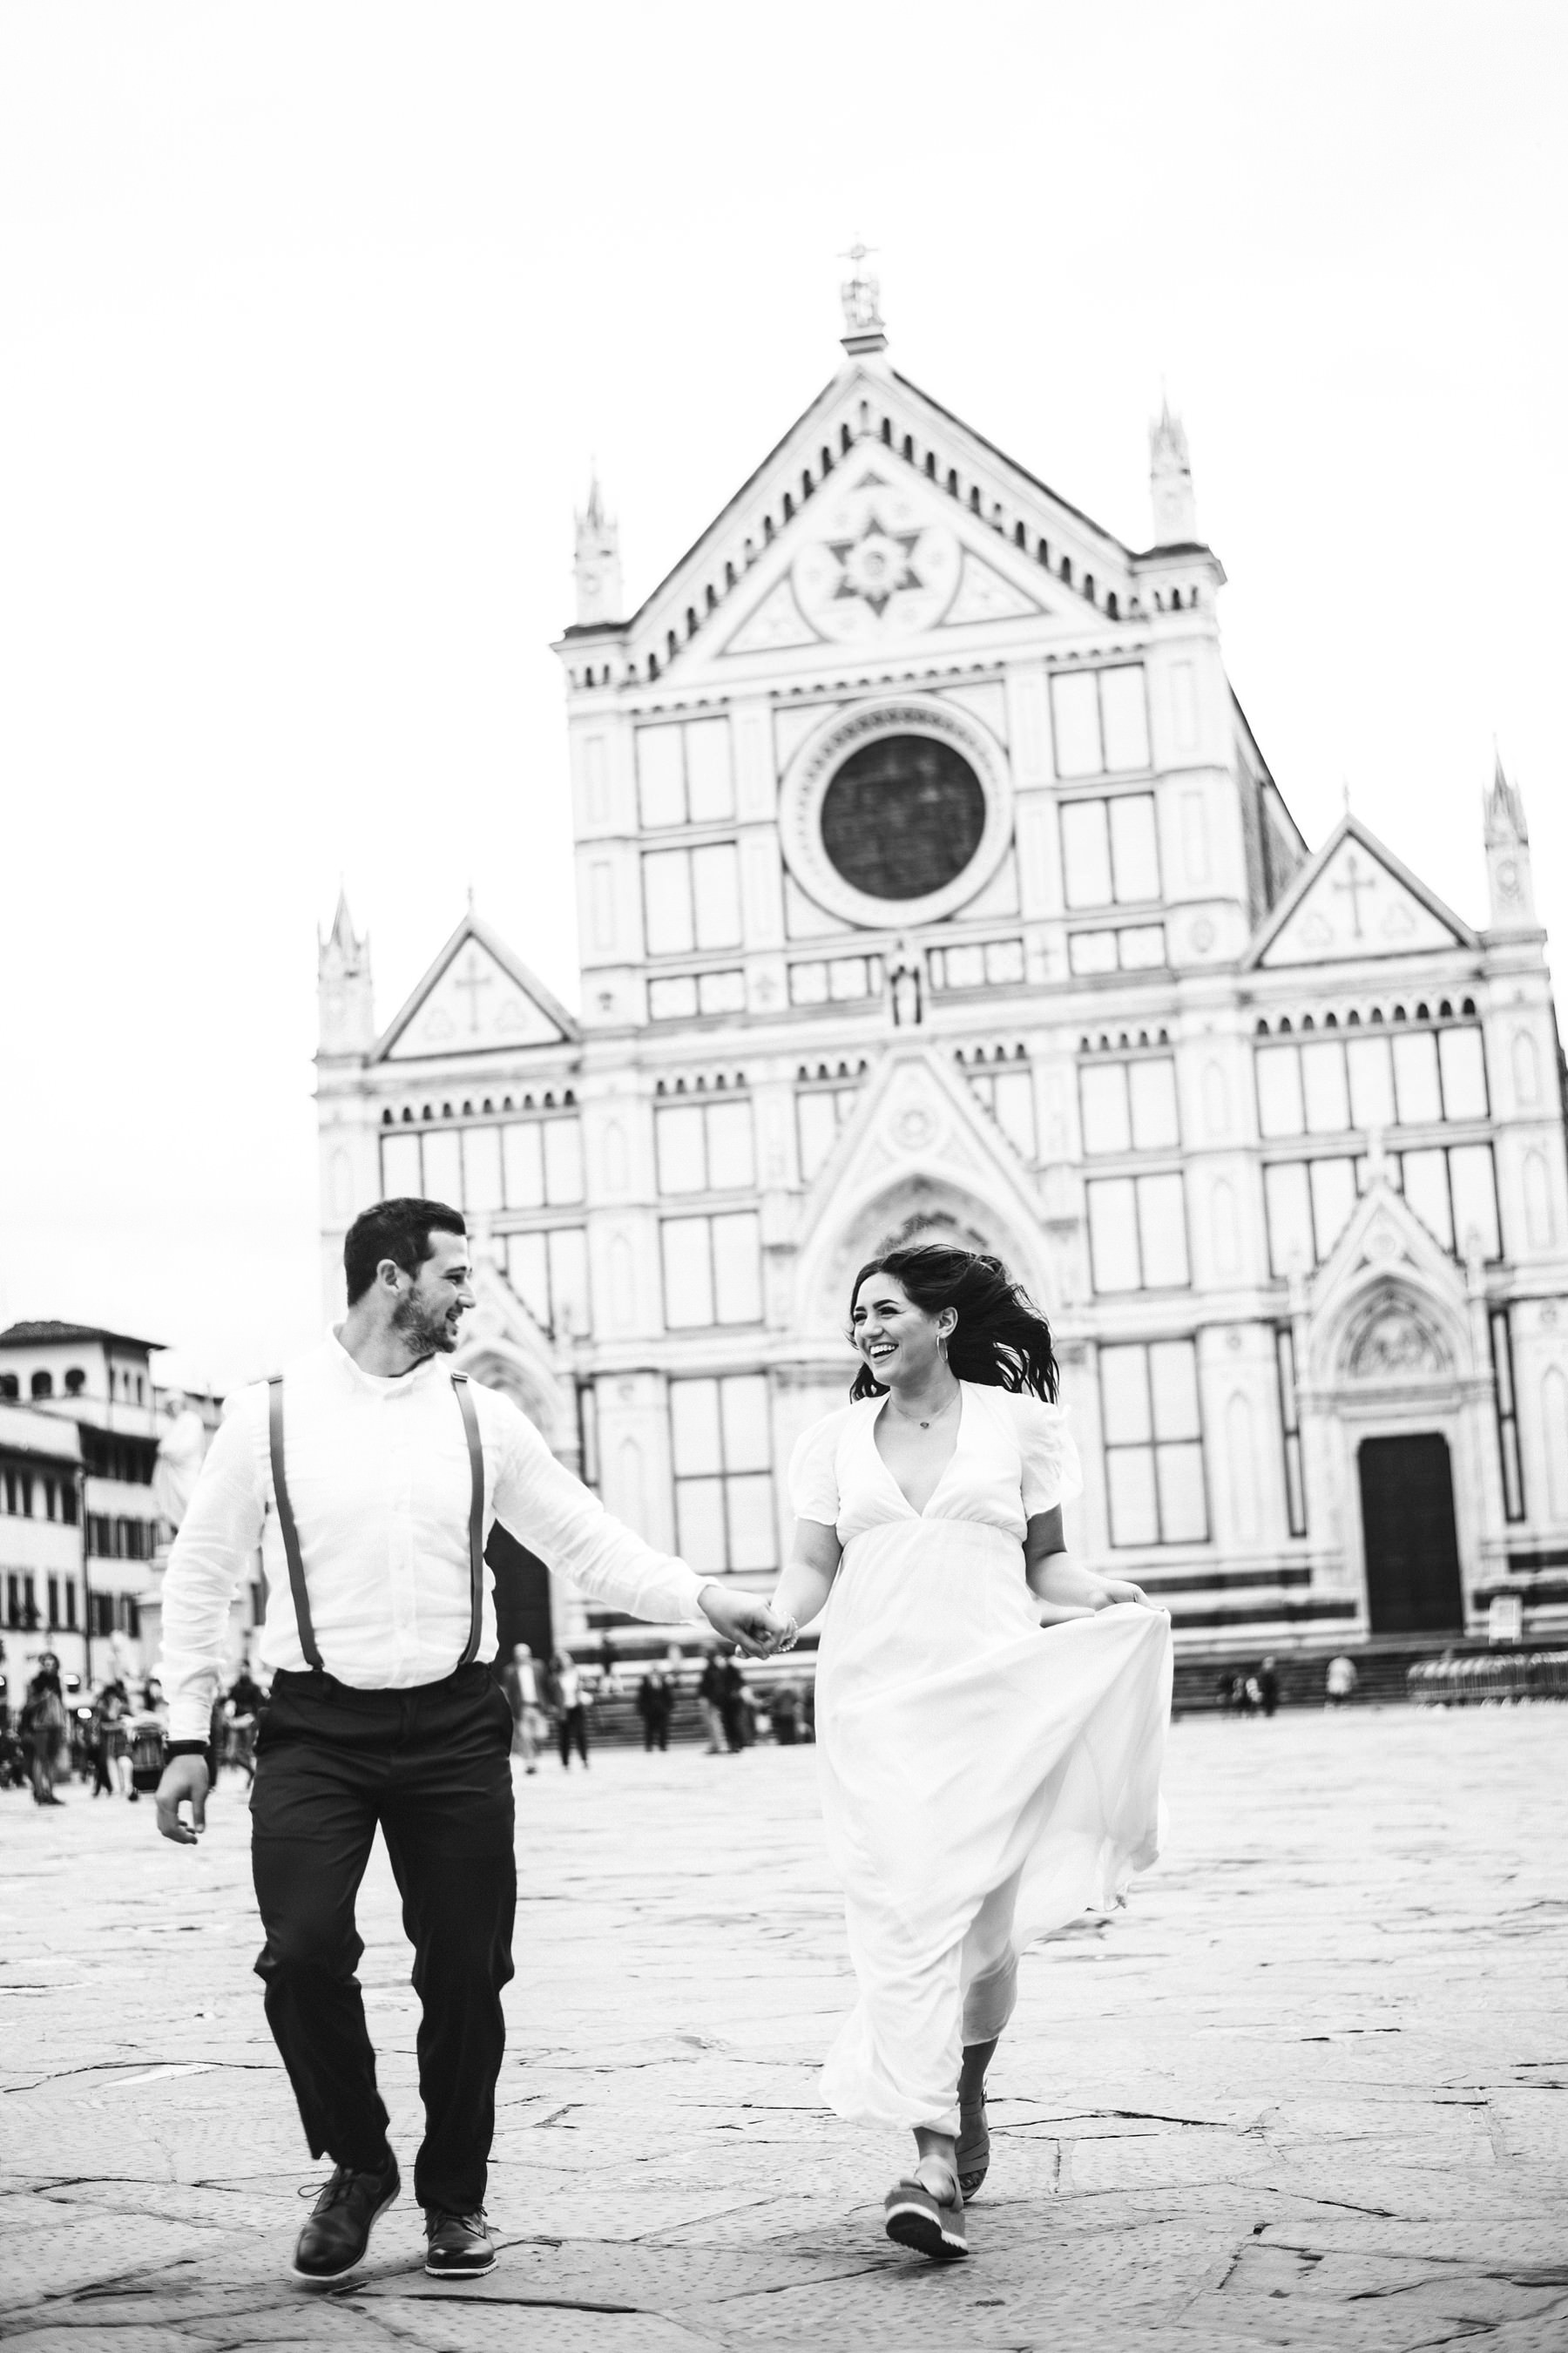 Romantic, fun and exciting elopement photo shoot in Florence near Santa Croce in the historic centre of the cradle of Renaissance